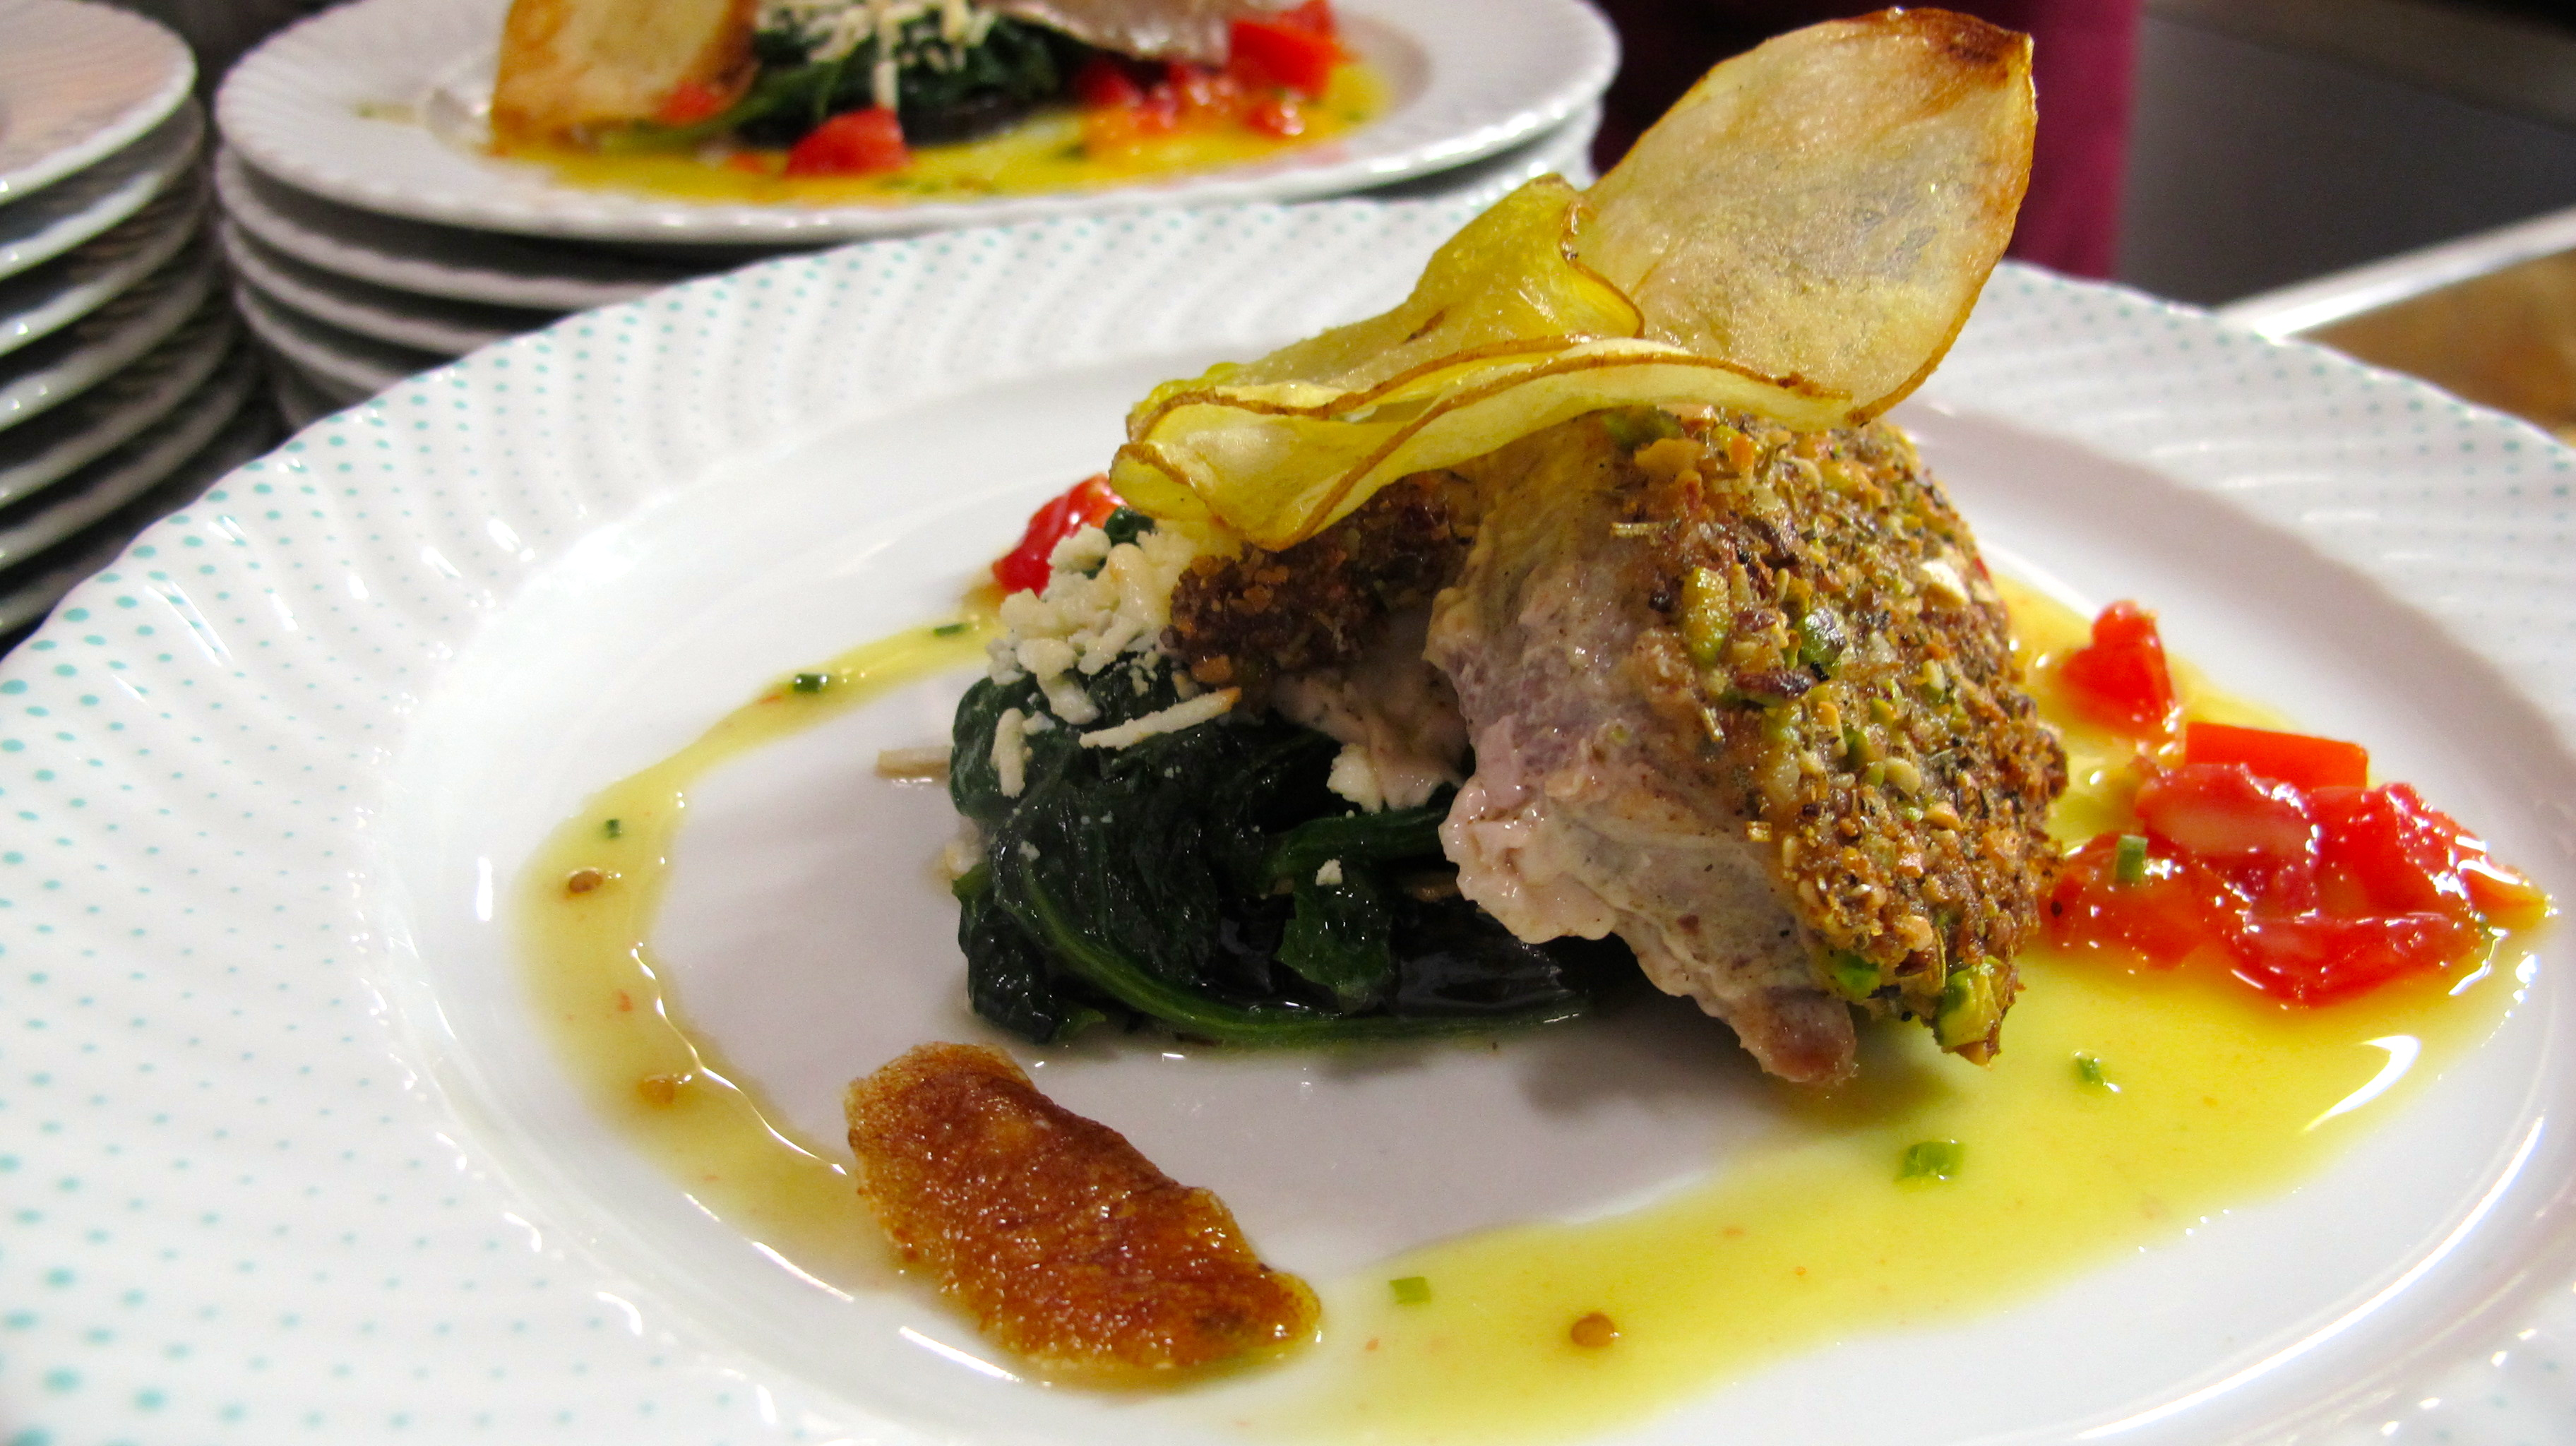 Tuna in a pistachio crust with spinach, tomatoes, and tropical sauce, and house-cut potato chips. I did the chips and diced the tomatoes, thank you very much.